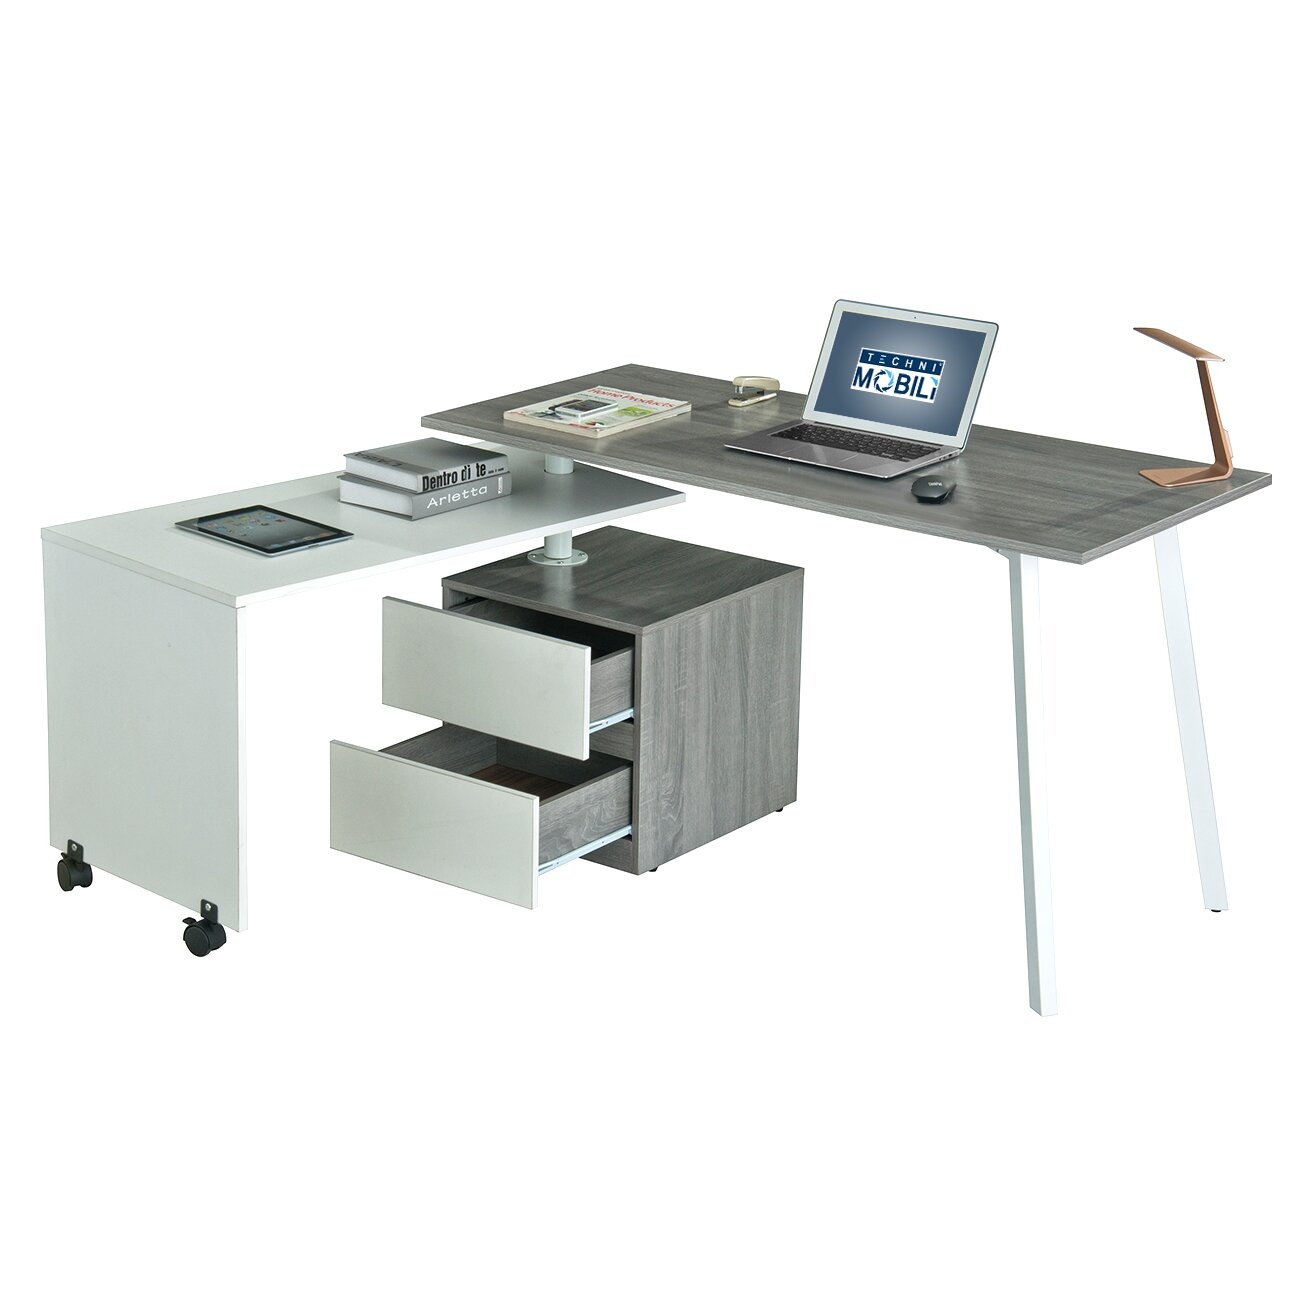 l techni dp kitchen shaped with corner dining com tempered chocolate mobili color glass amazon drawer computer desk